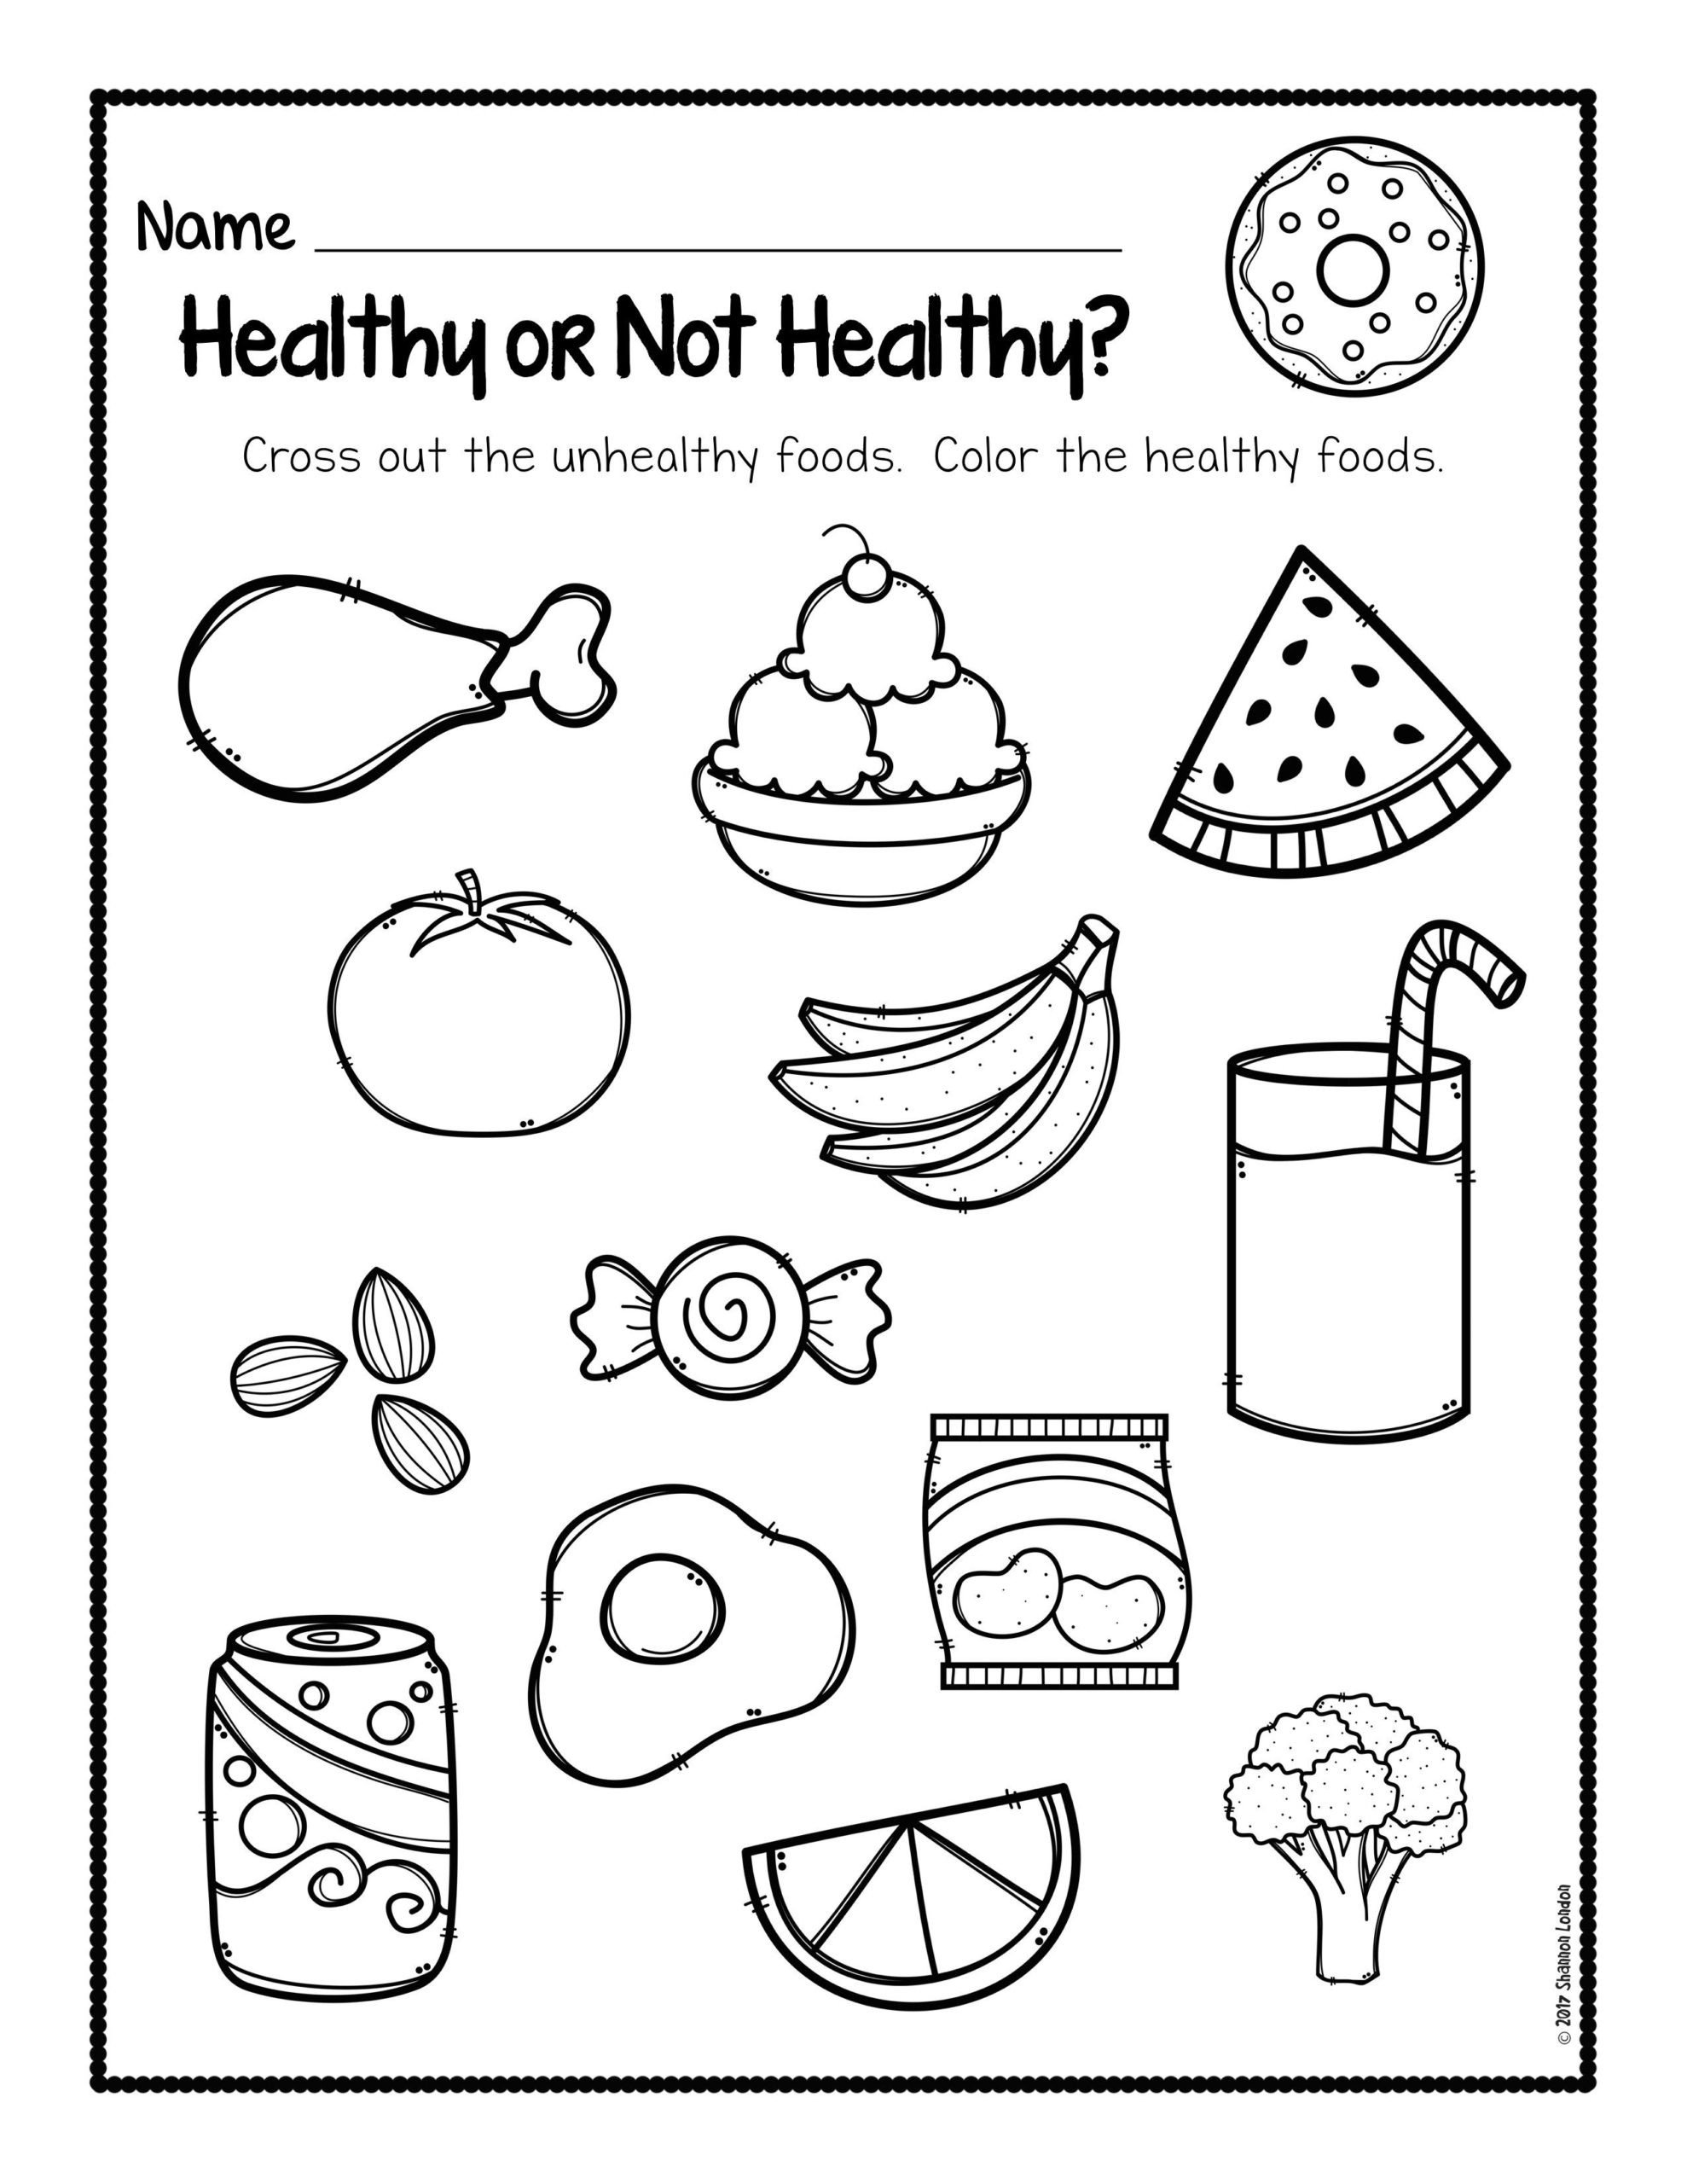 Free Printable Abeka Worksheets Healthy Foods Worksheet Free Habits for Kids 1st Grade